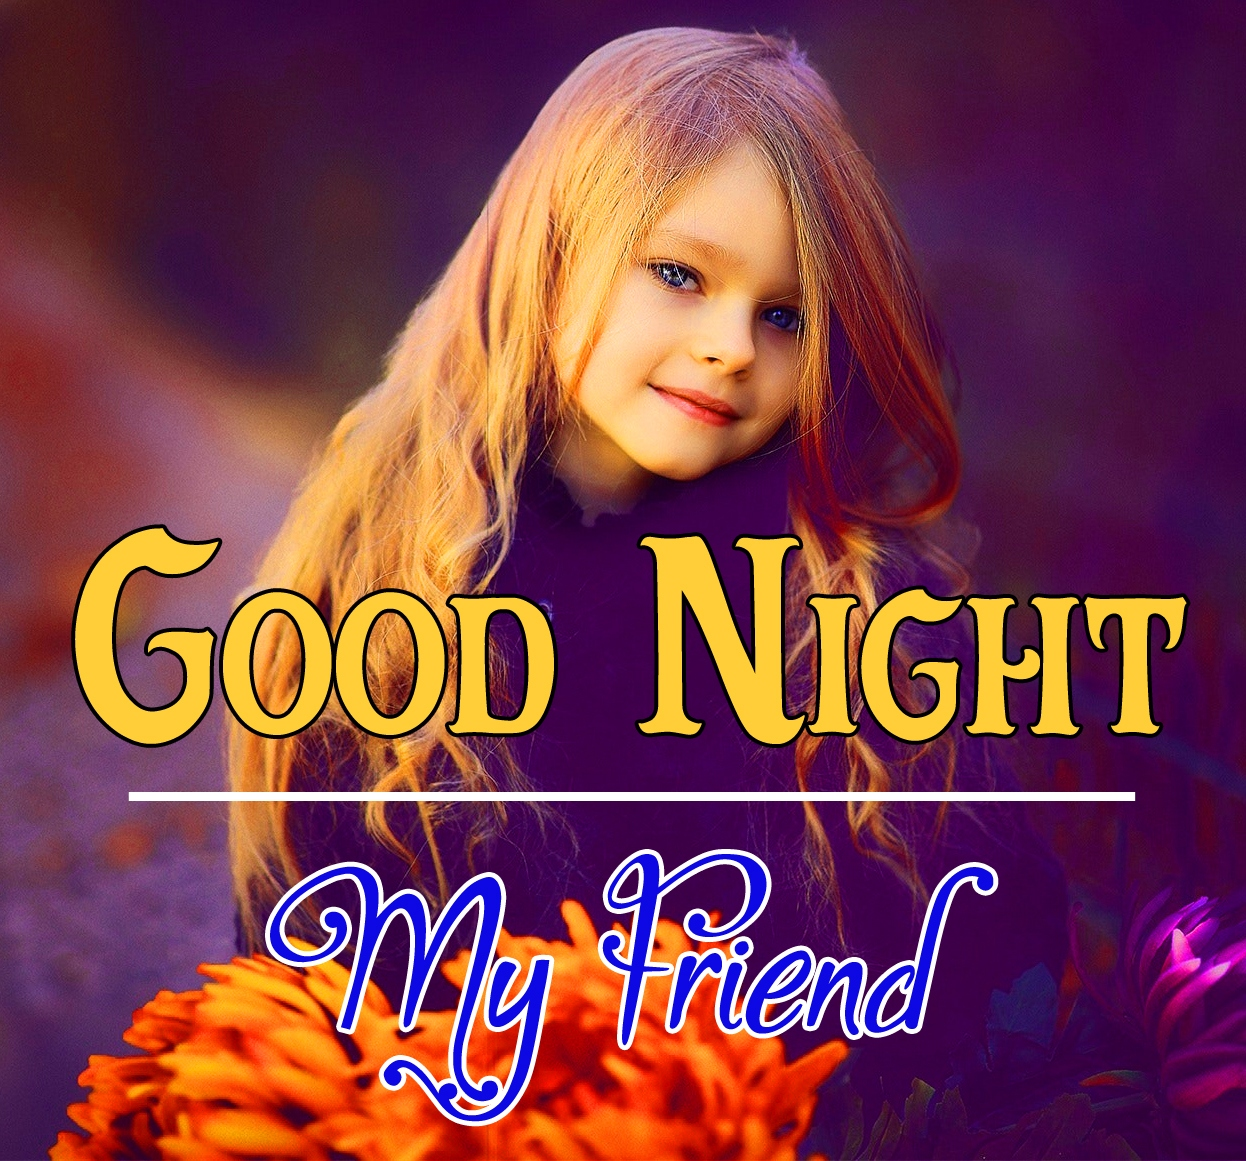 Good night wallpaper hd 115